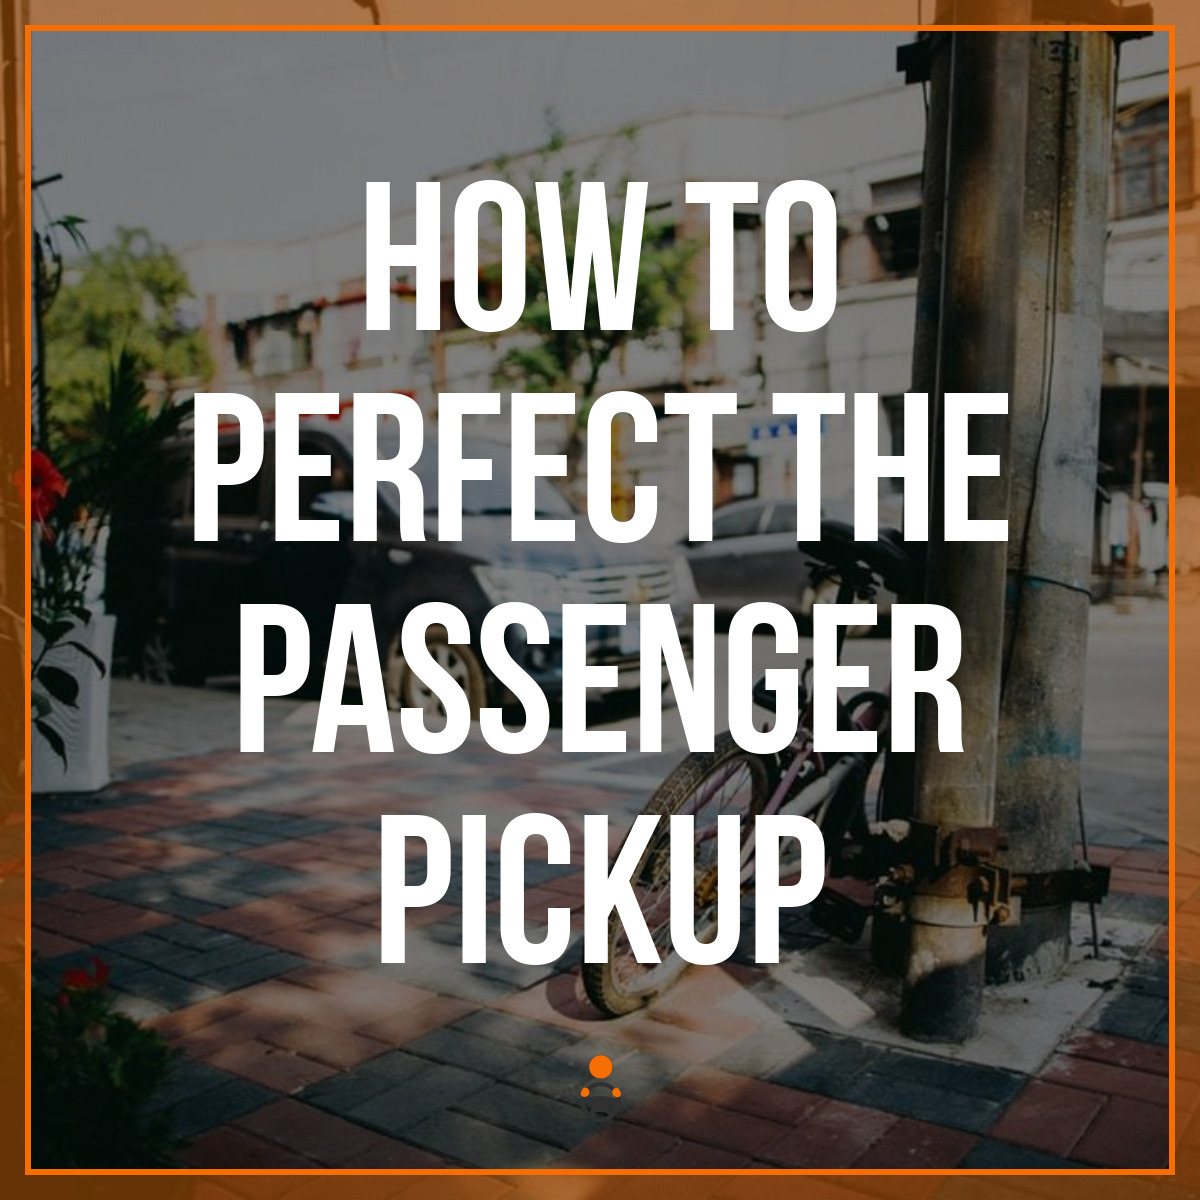 How to Perfect the Passenger Pickup